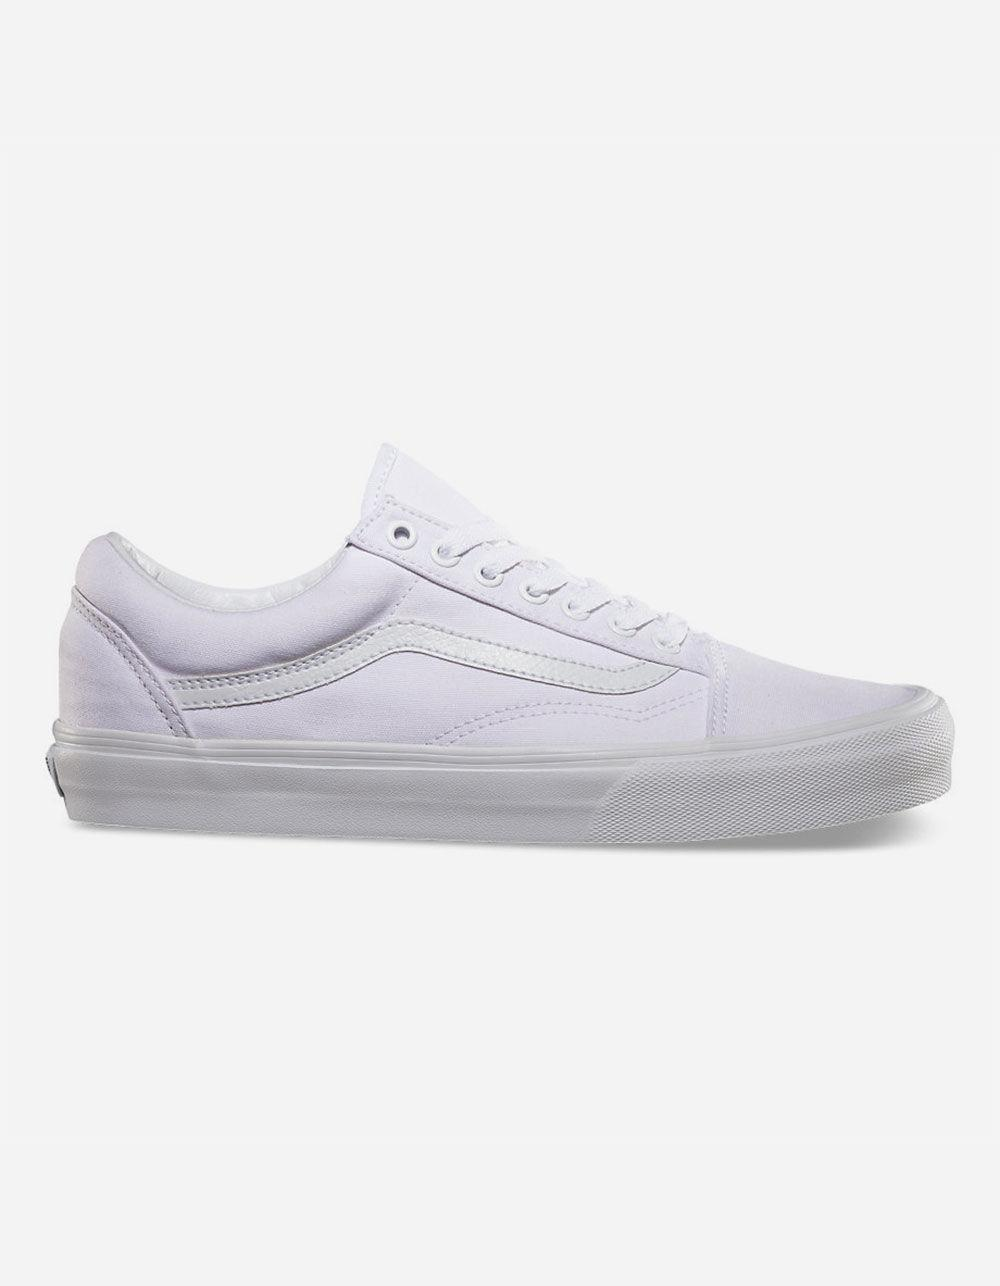 a6f5cab8fd5 Lyst - Vans Canvas Old Skool Shoes in White